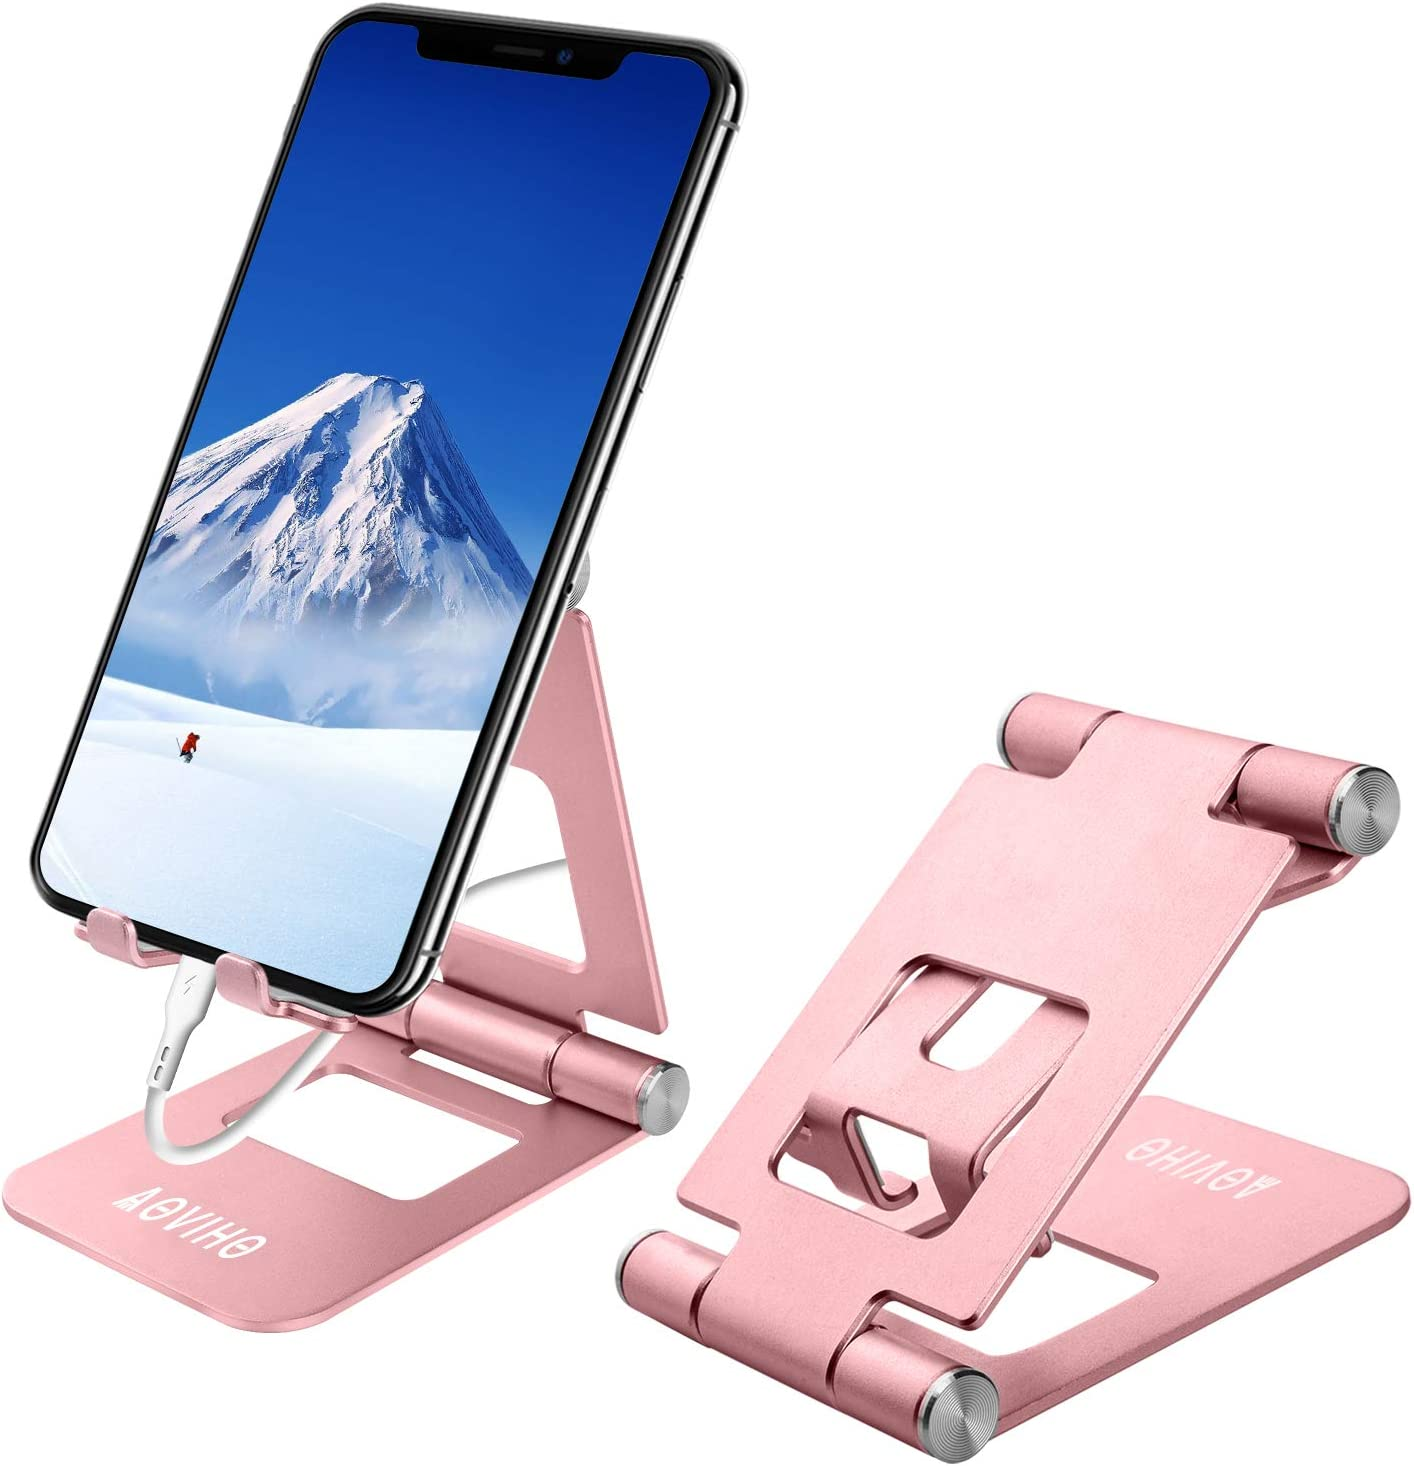 Cell Phone Stand Adjustable, Aoviho Desktop Phone Holder Aluminum Portable Phone Dock Compatible with iPhone 5 6 7 8 11 Pro 12 Mini X XR XS Max Samsung Desk Nightstand Decor (Rose Gold)